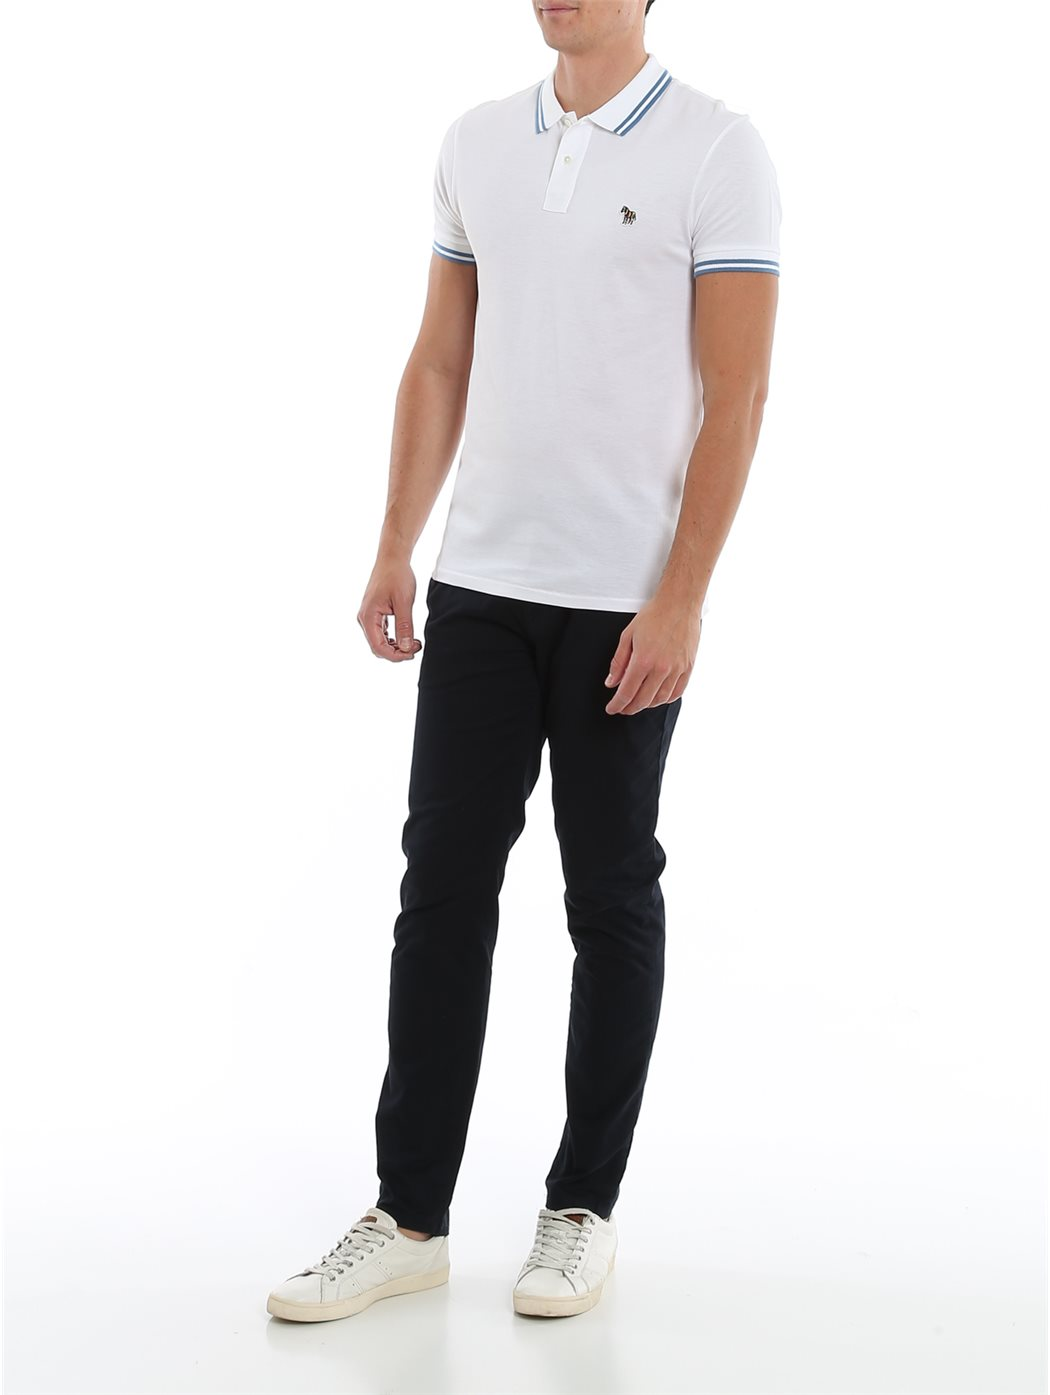 PAUL SMITH M2R-534LZ 01-WHITE POLO